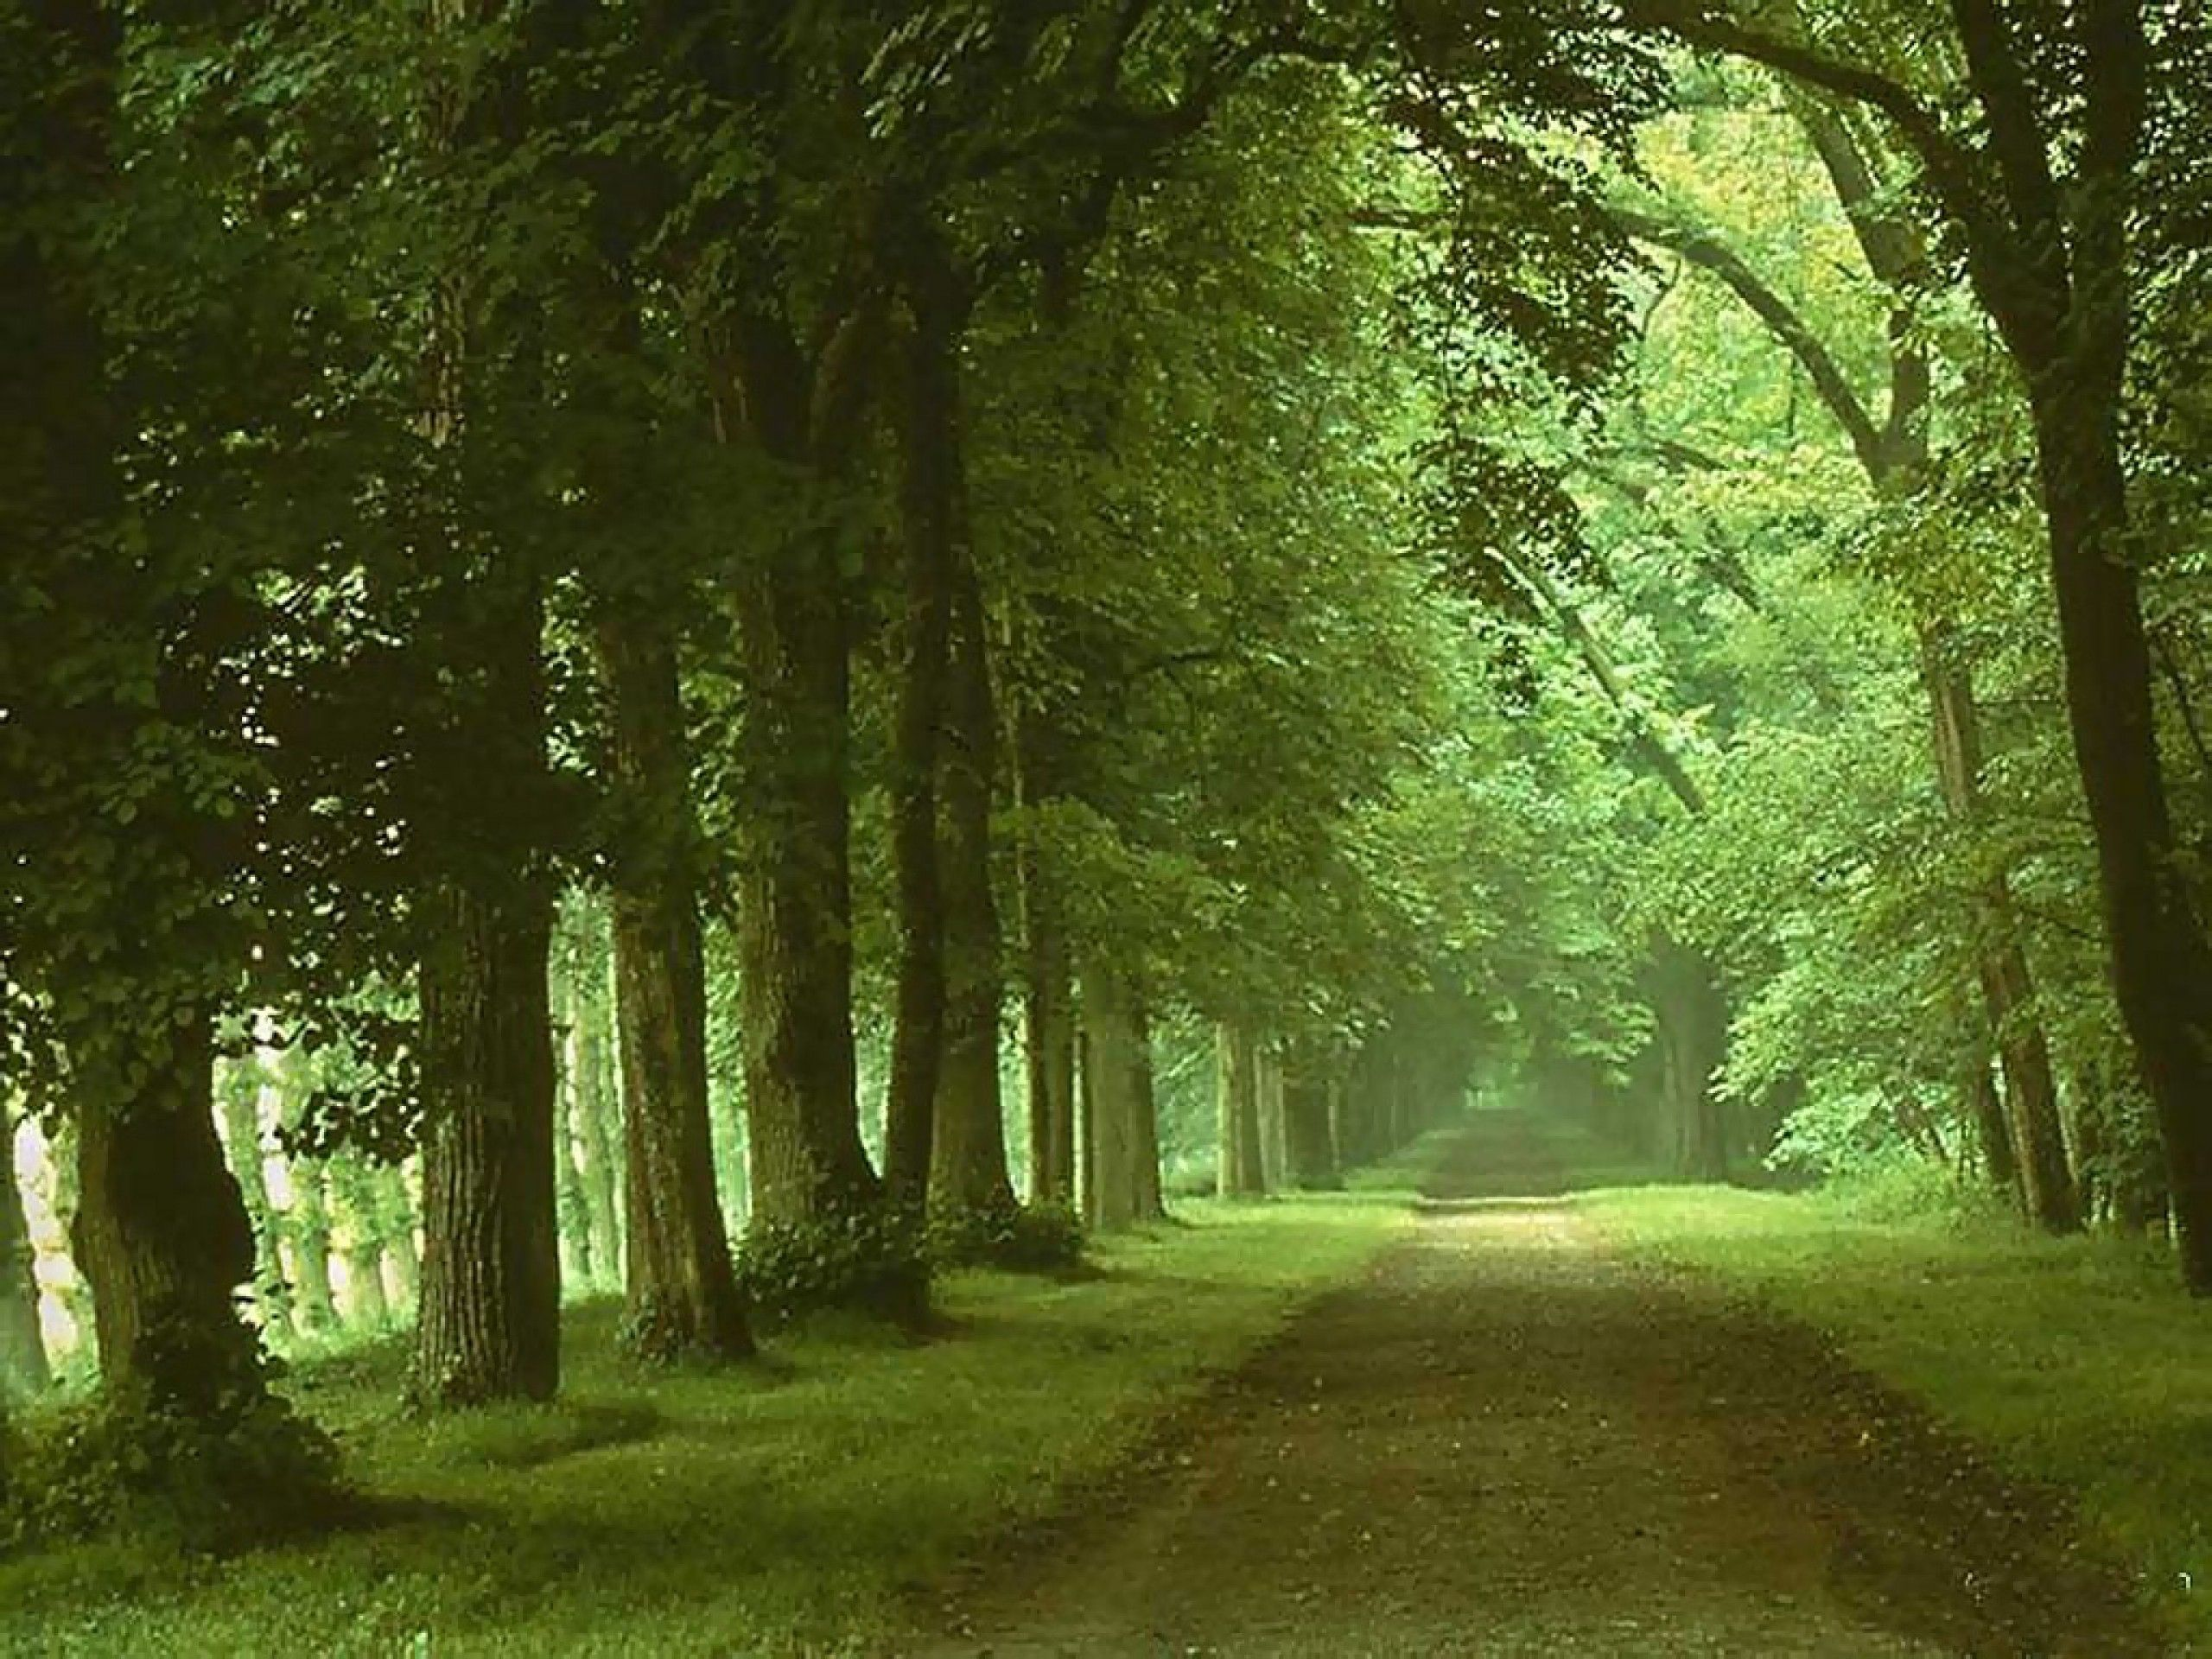 Great Desktop Wallpaper Green Trees Nature Pixel Super Cool Hd For Trully Awesome